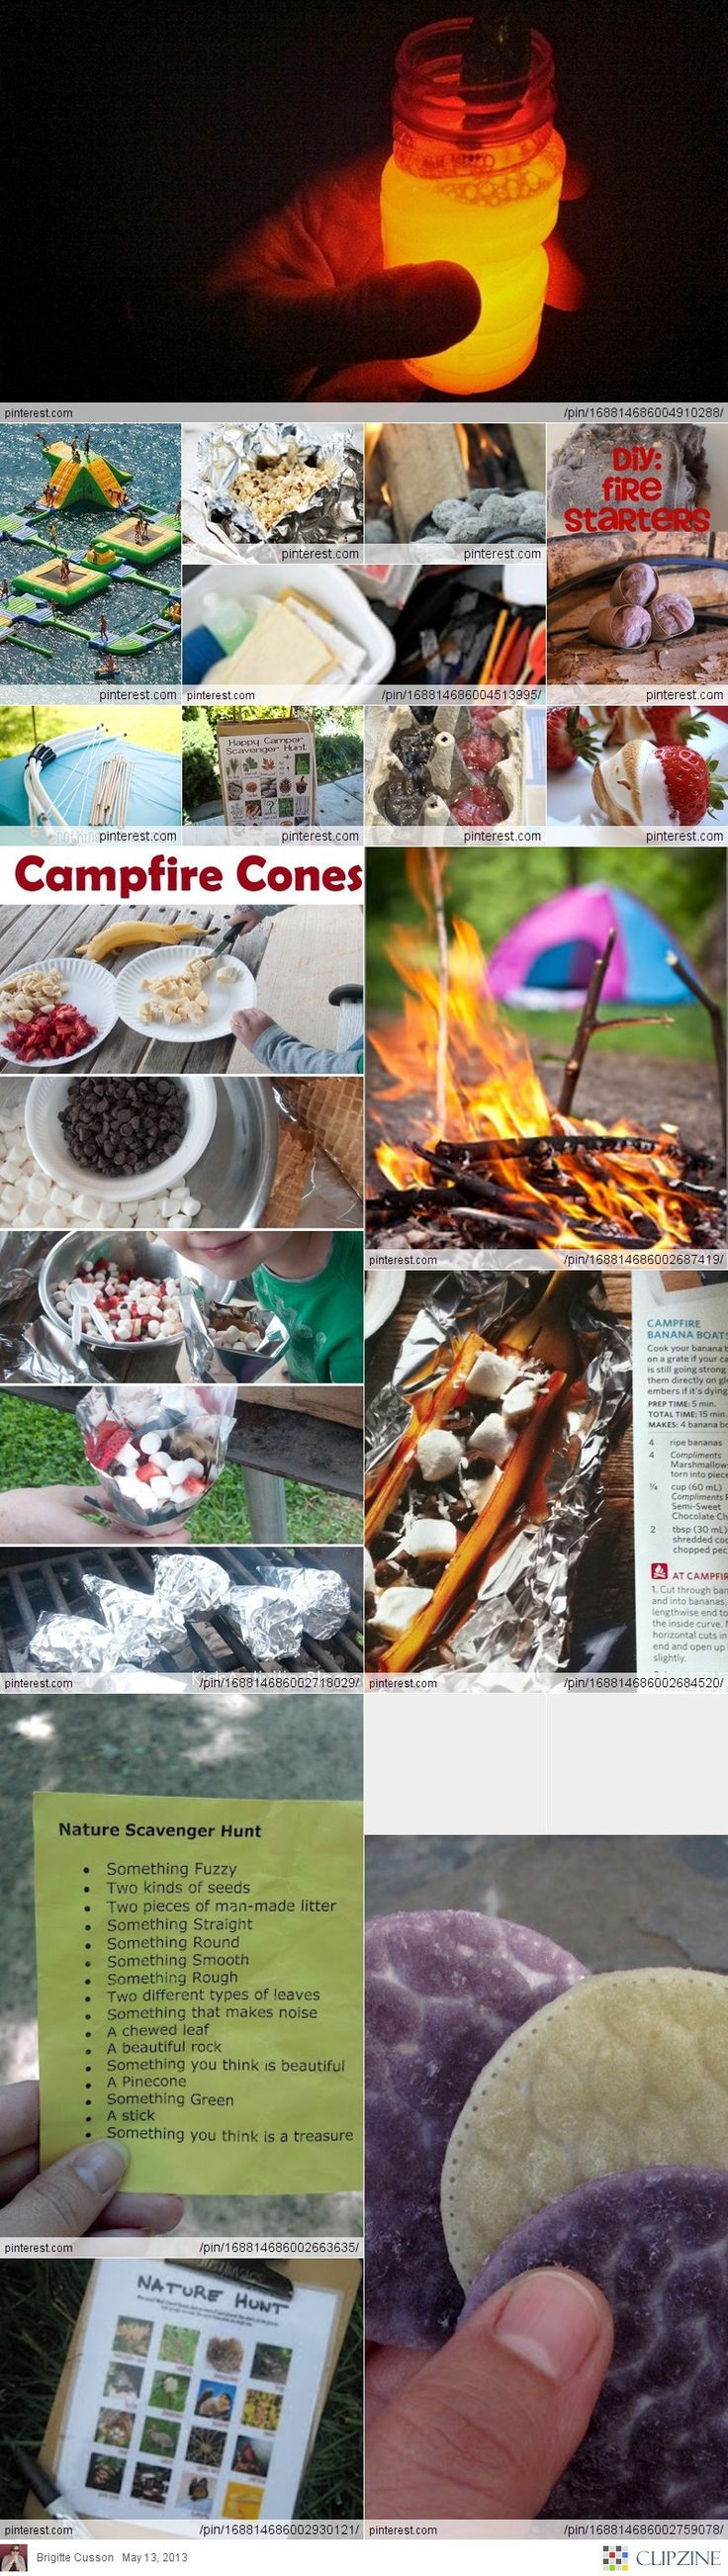 Summer Camping Ideas  (6/3/2013) Outdoors: Boating, Canoeing, Camping (CTS)